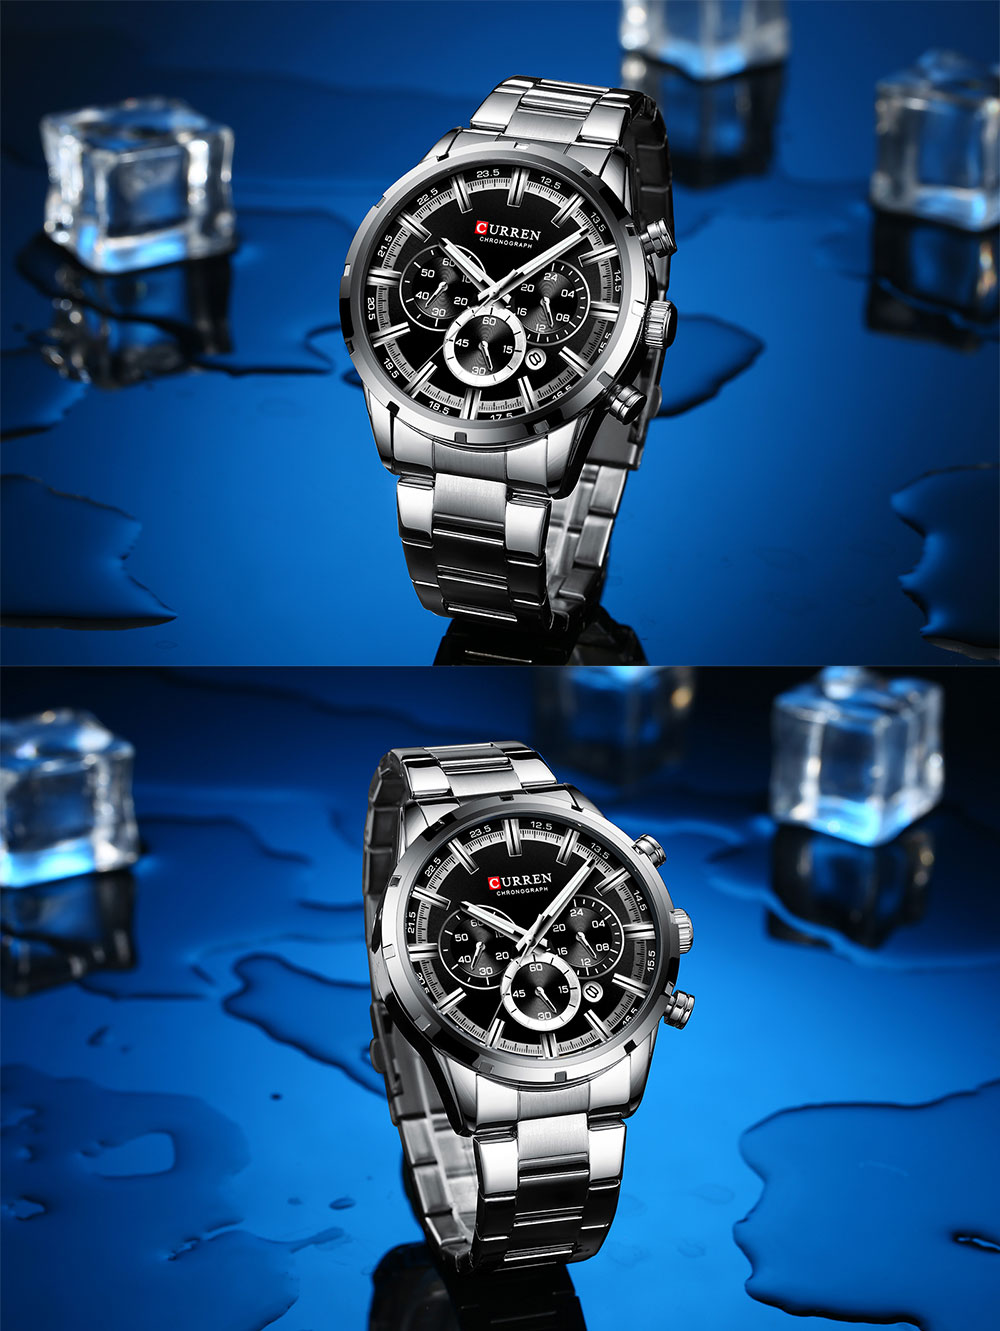 Hcd2165b261814a4d8142ac9dabe05f46Q CURREN Top Brand Military Quartz Watches Silver Clock Mens Quartz Stainless Steel Chronograph Watch for Men Casual Sporty Watch